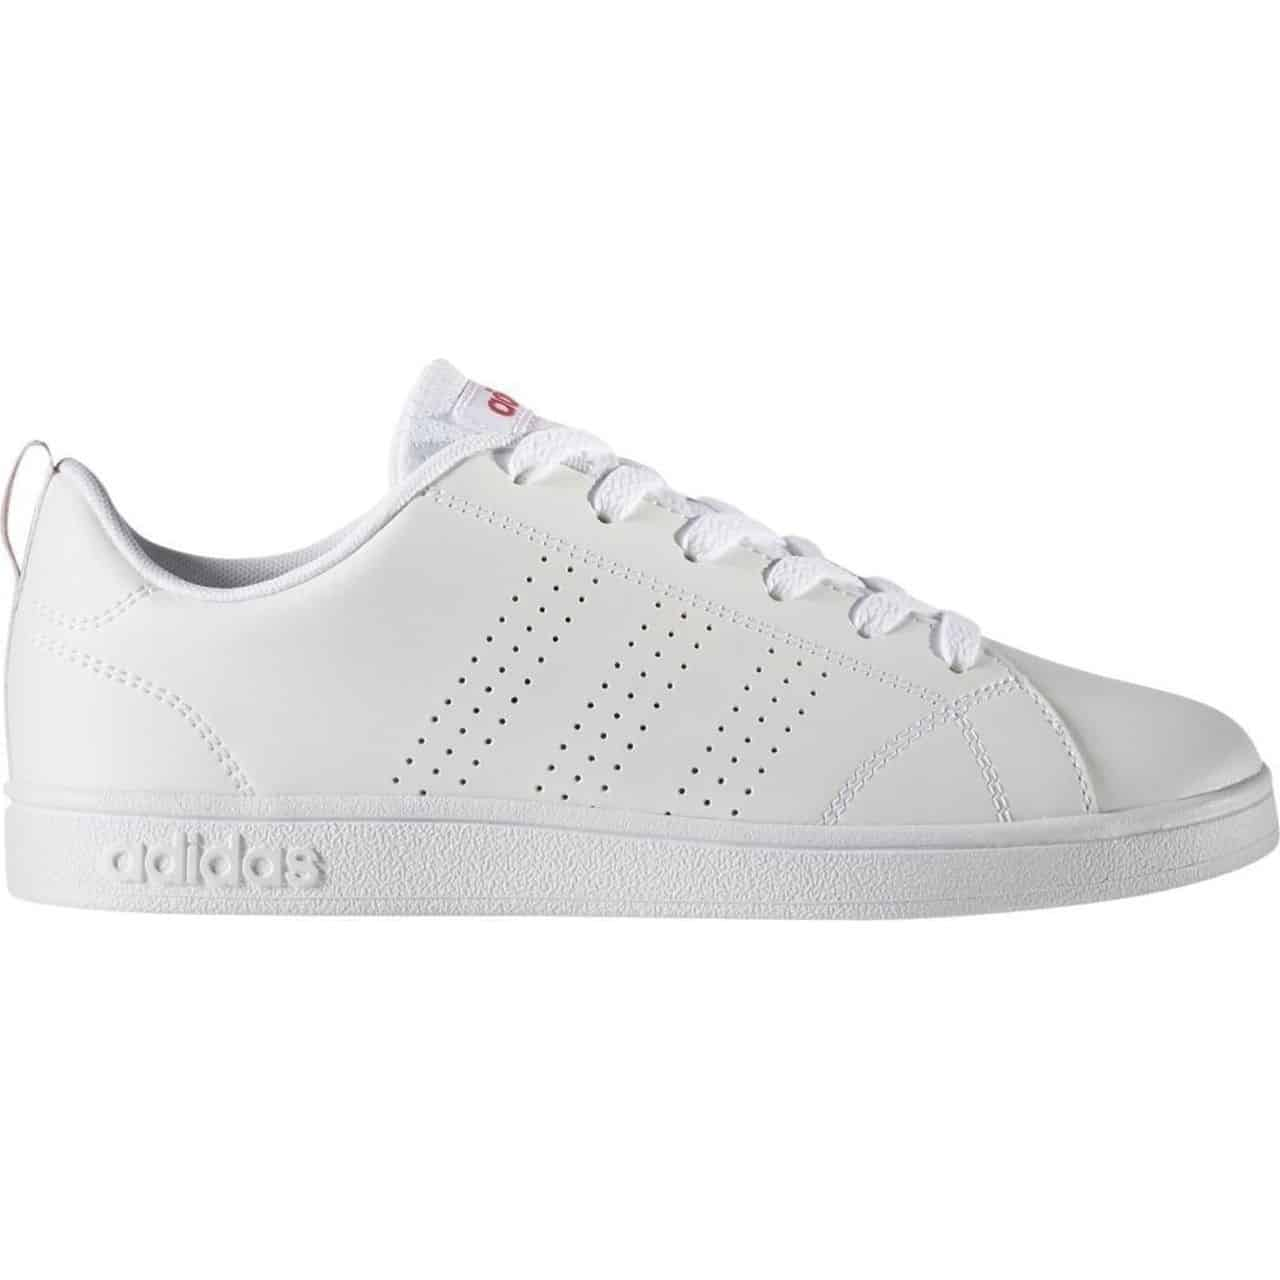 ADIDASI ADIDAS VS ADVANTAGE CL K - BB9976 1